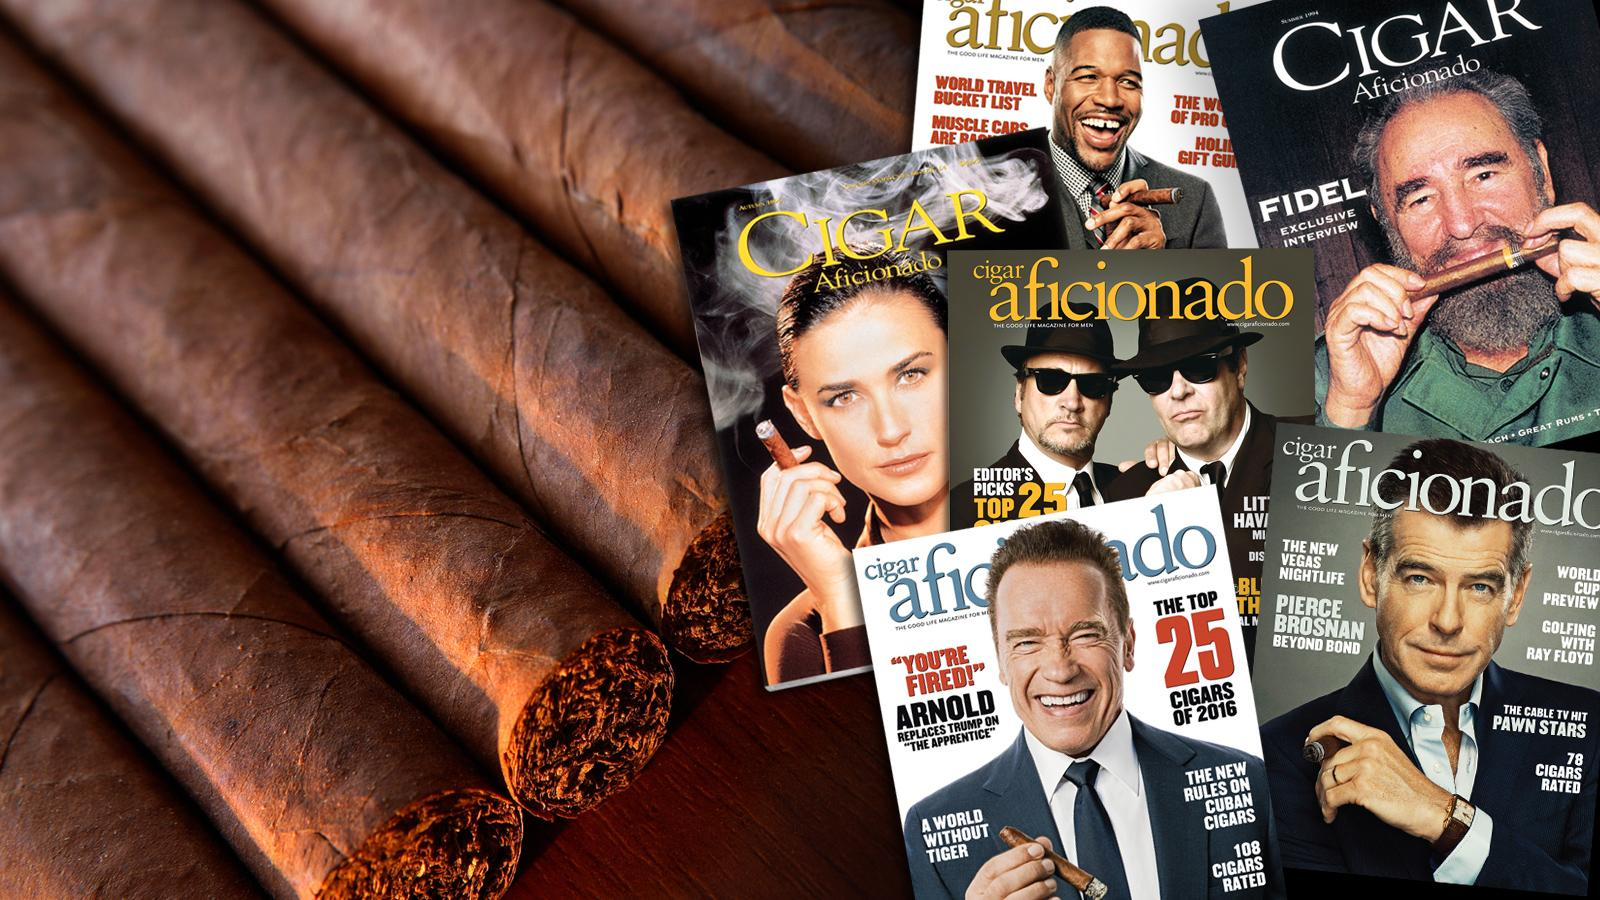 Cigar Aficionado Cover Contest Enters The Sweet 16